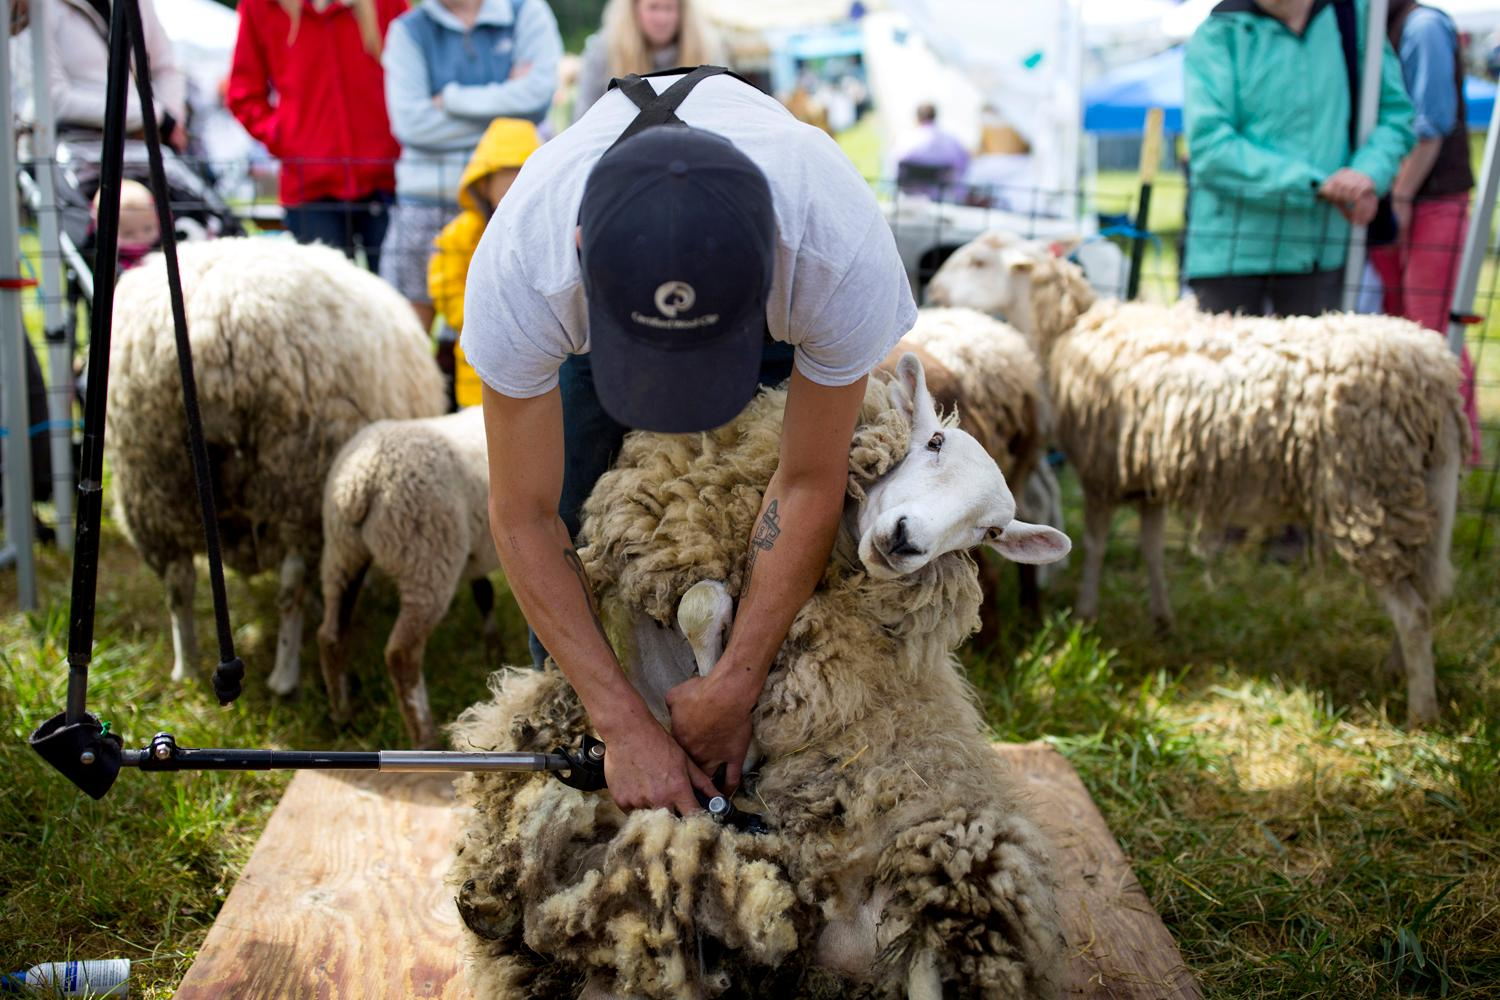 Hundreds of people flock to the Vashon Sheepdog Classic to watch shephards compete in the national qualifier at Misty Isle Farms on Vashon Island. (Sy Bean / Seattle Refined)